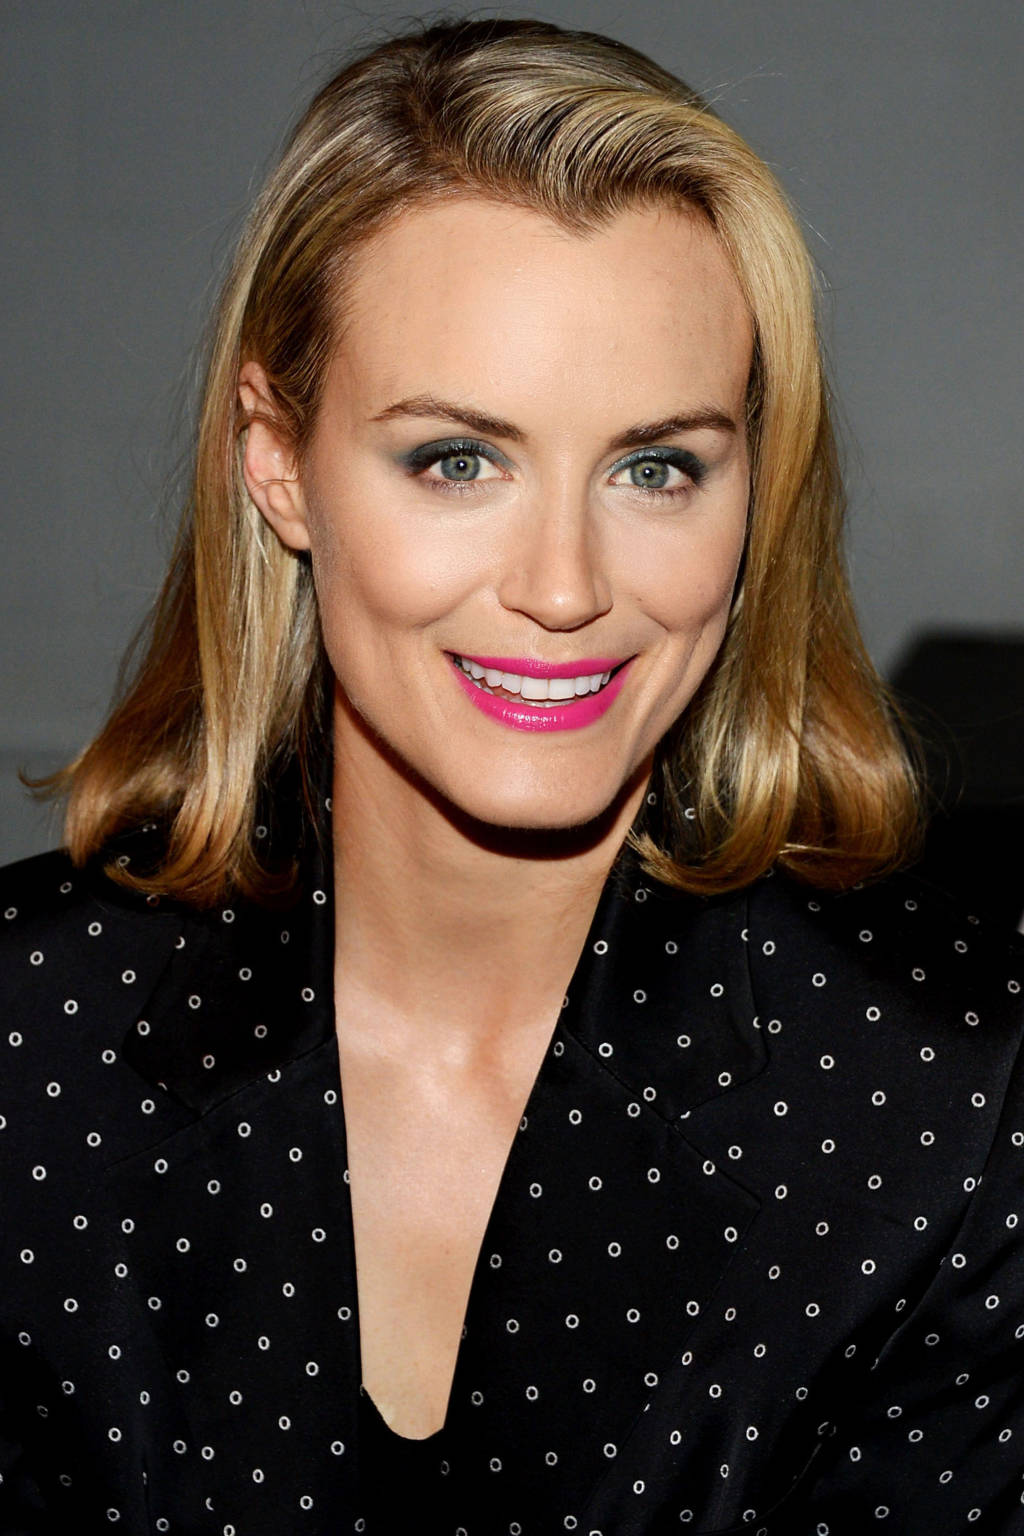 Taylor Shilling blonde hair color for winter